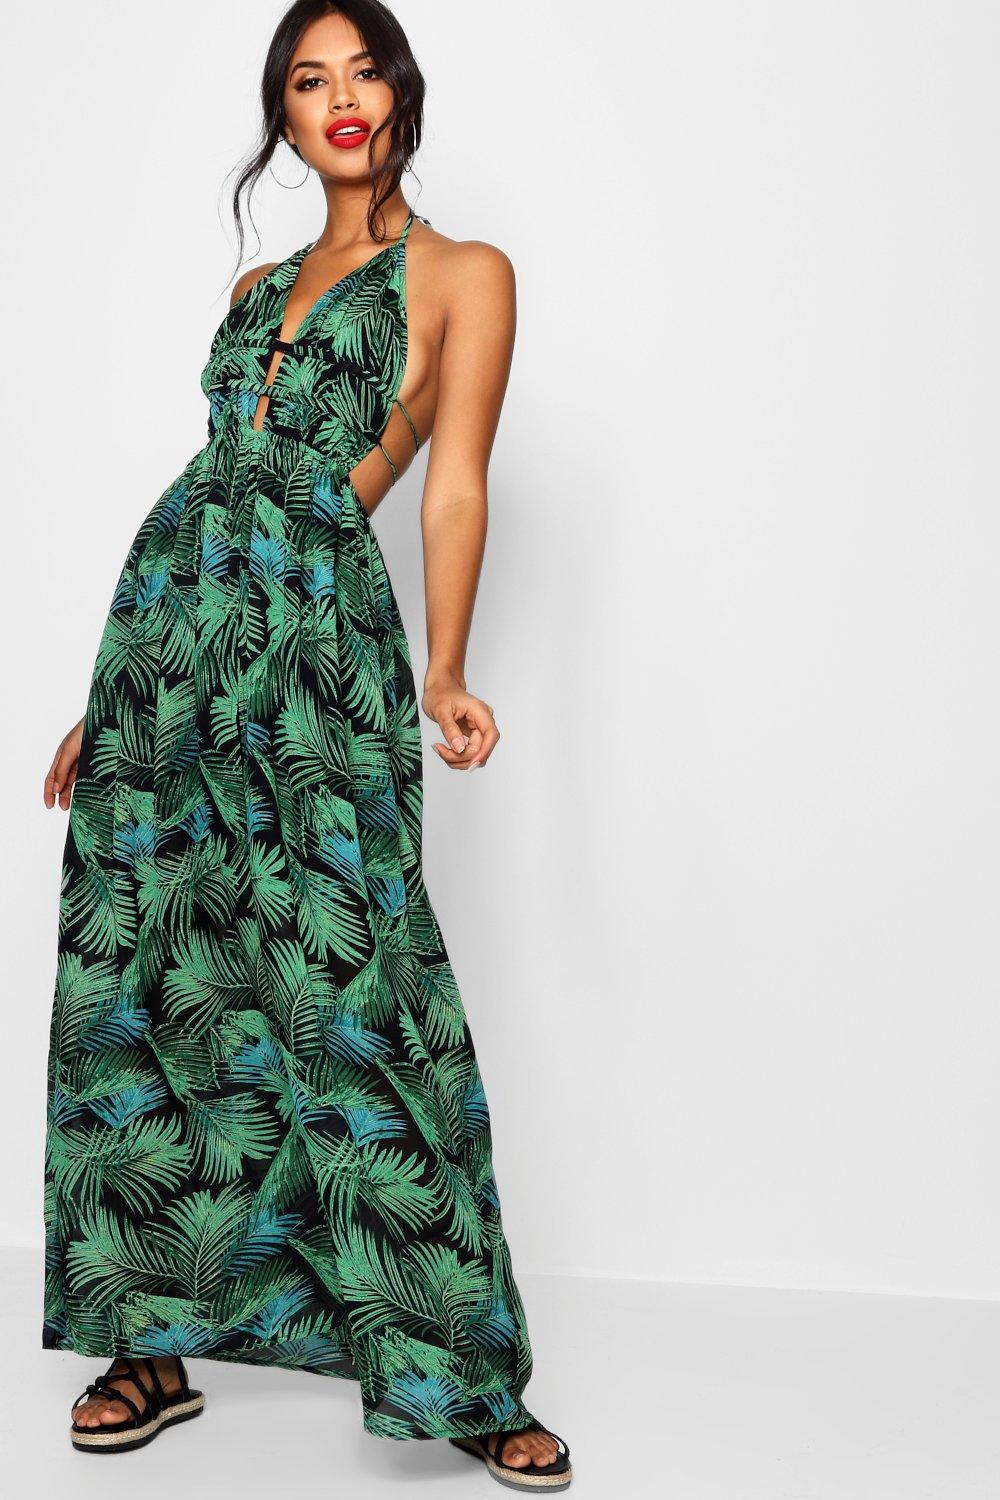 53a8bfd5169f Boohoo Tall Plunge Front Palm Print Maxi Dress in Green - Lyst